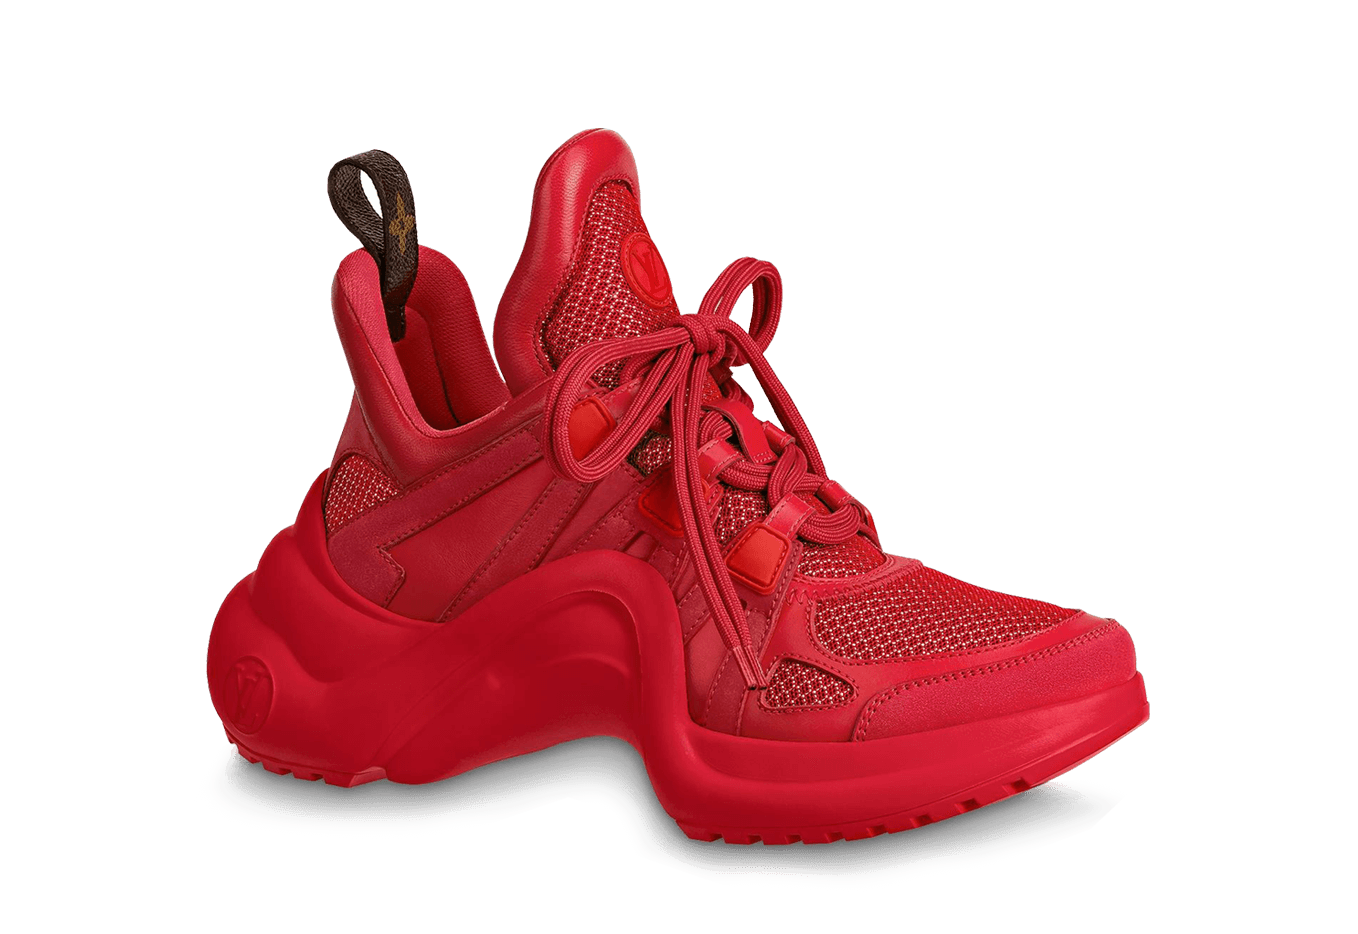 LOUIS VUITTON     Archlight Sneaker Red the best workout inspiration